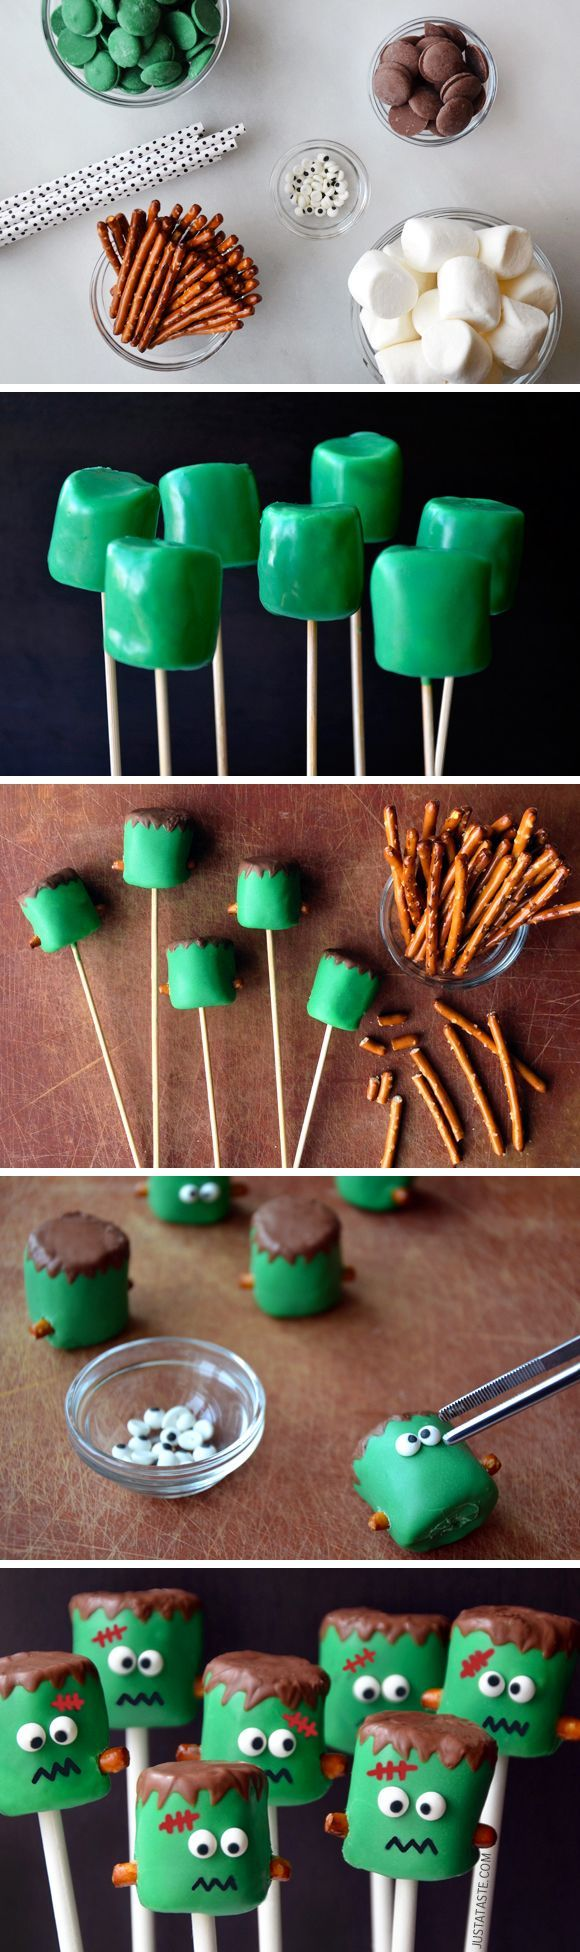 Serve up a spooky Halloween sweet with a quick and easy recipe for chocolate-dipped Frankenstein marshmallow pops.